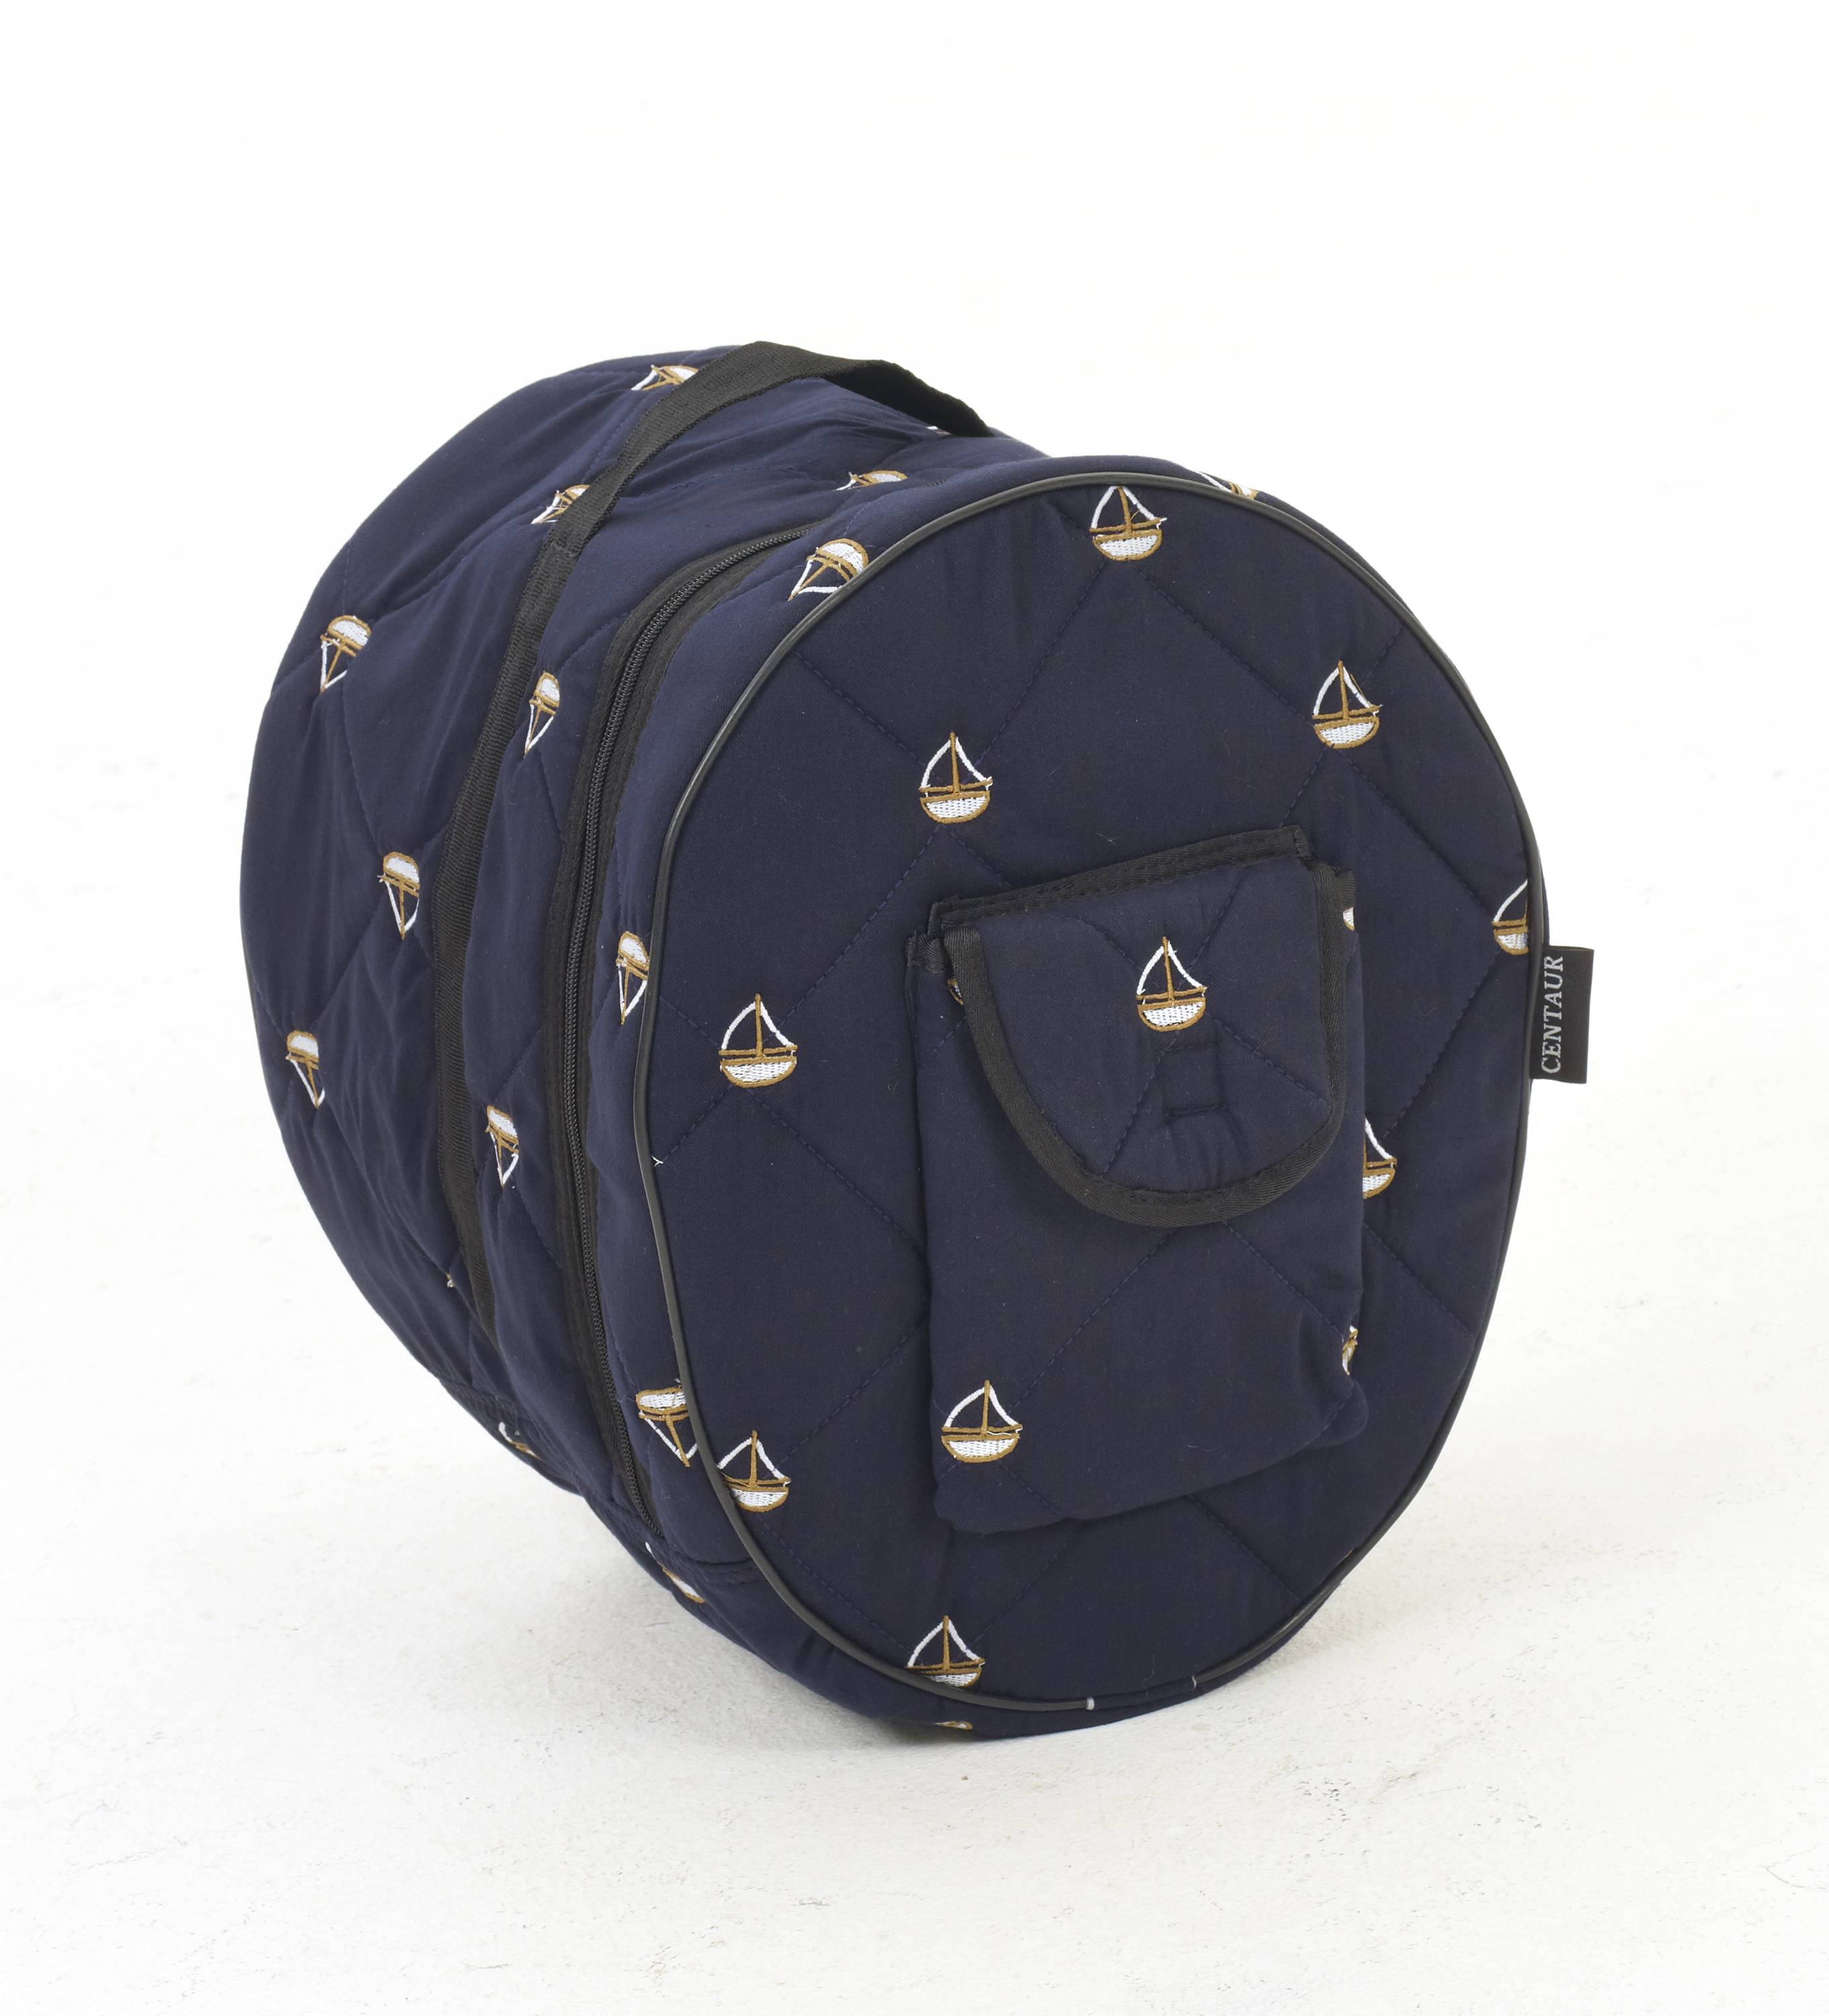 Centaur Embroidered Helmet Bag